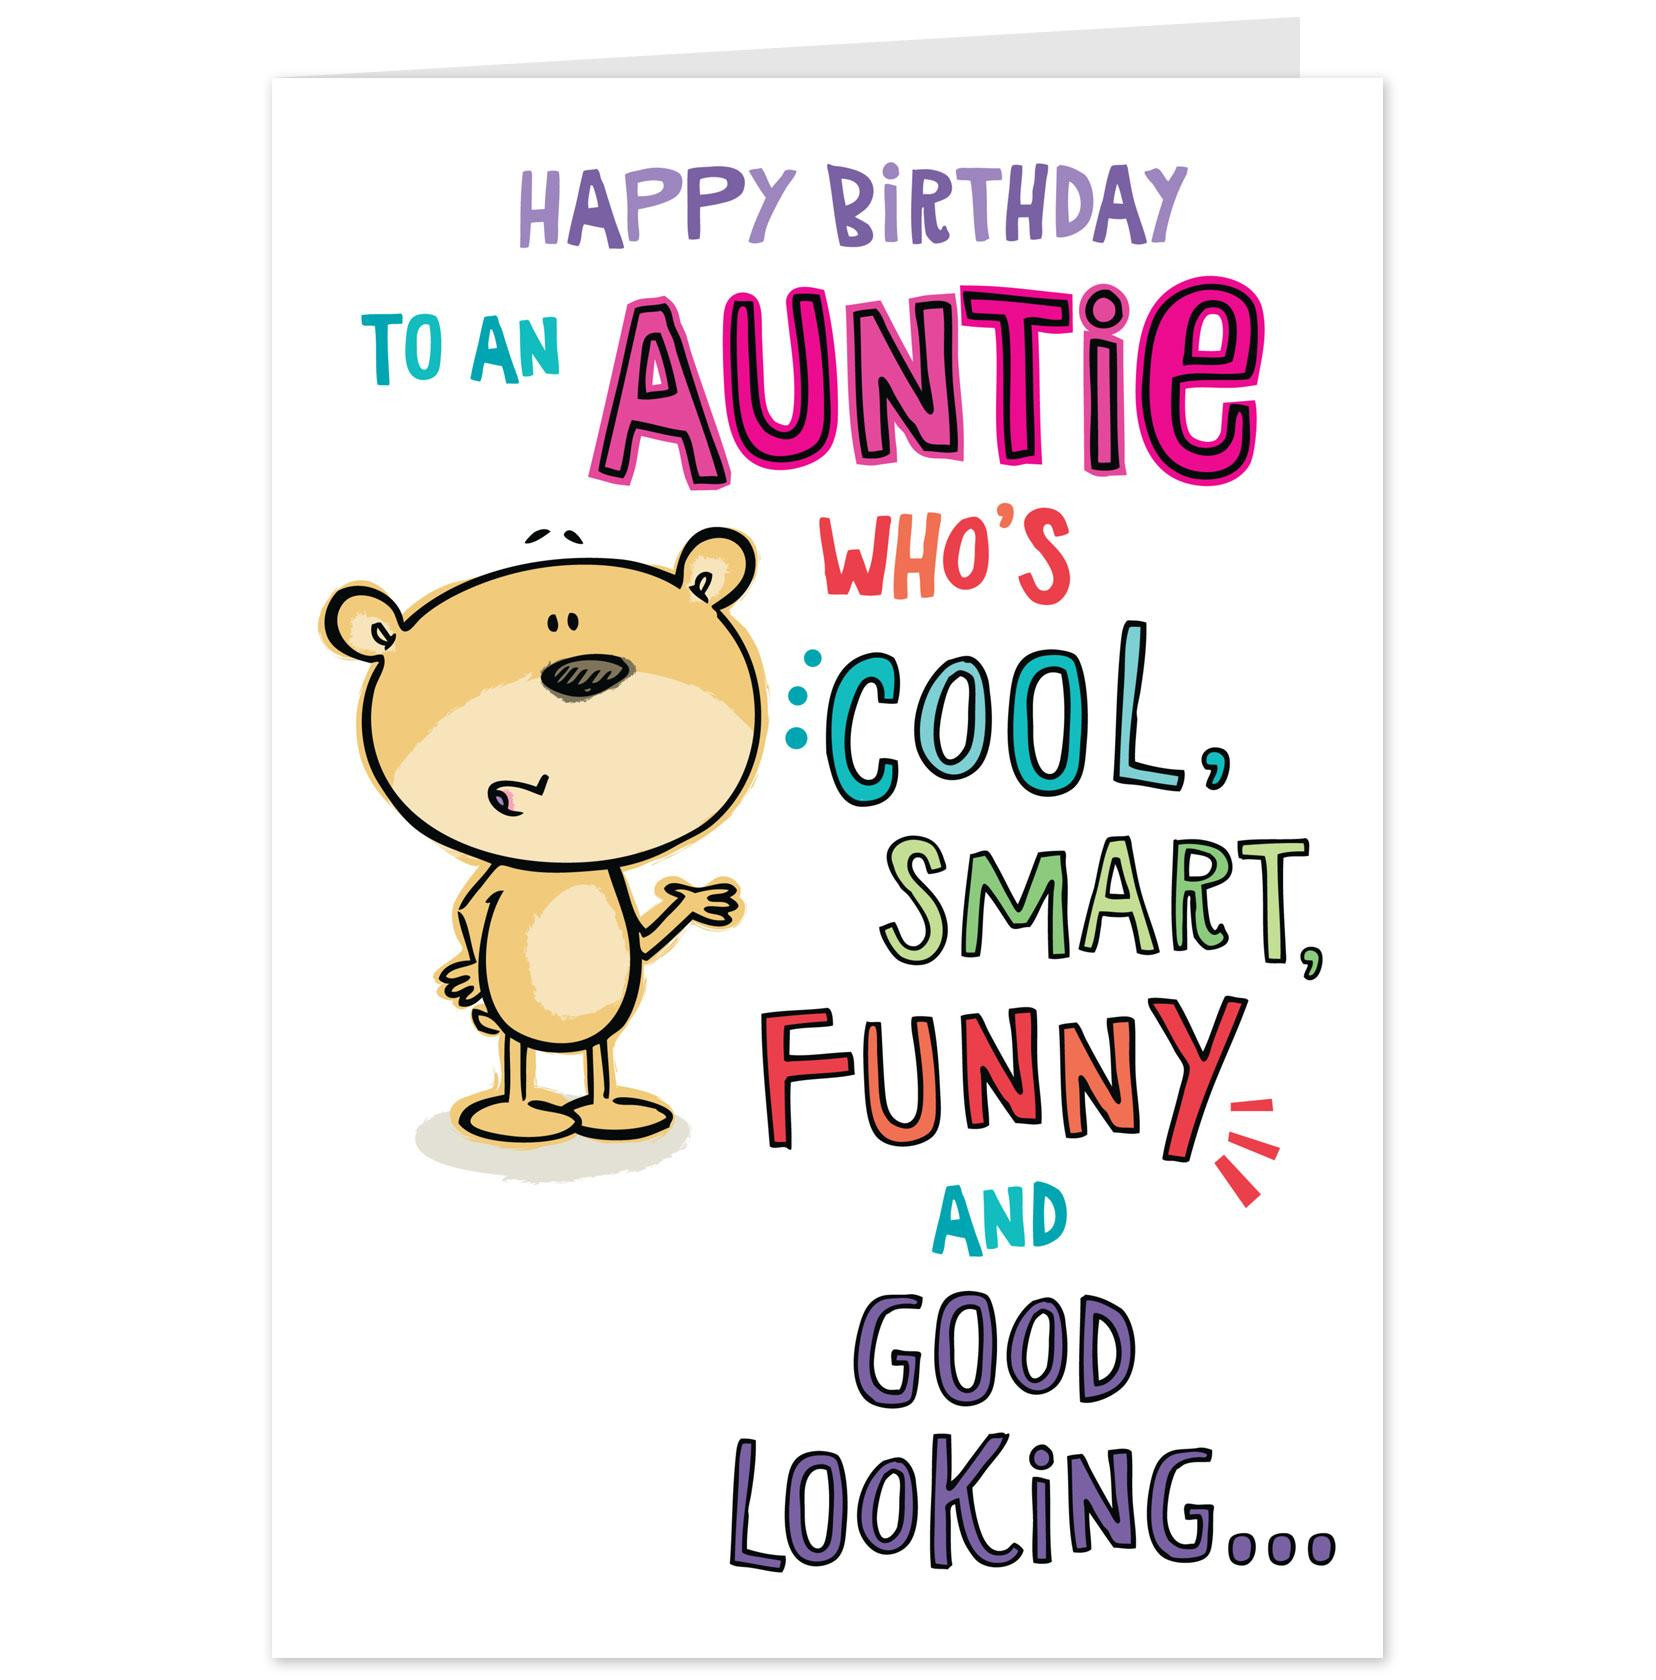 Best ideas about Happy Birthday Aunt Quotes . Save or Pin Humorous Happy Birthday Aunt Quotes QuotesGram Now.